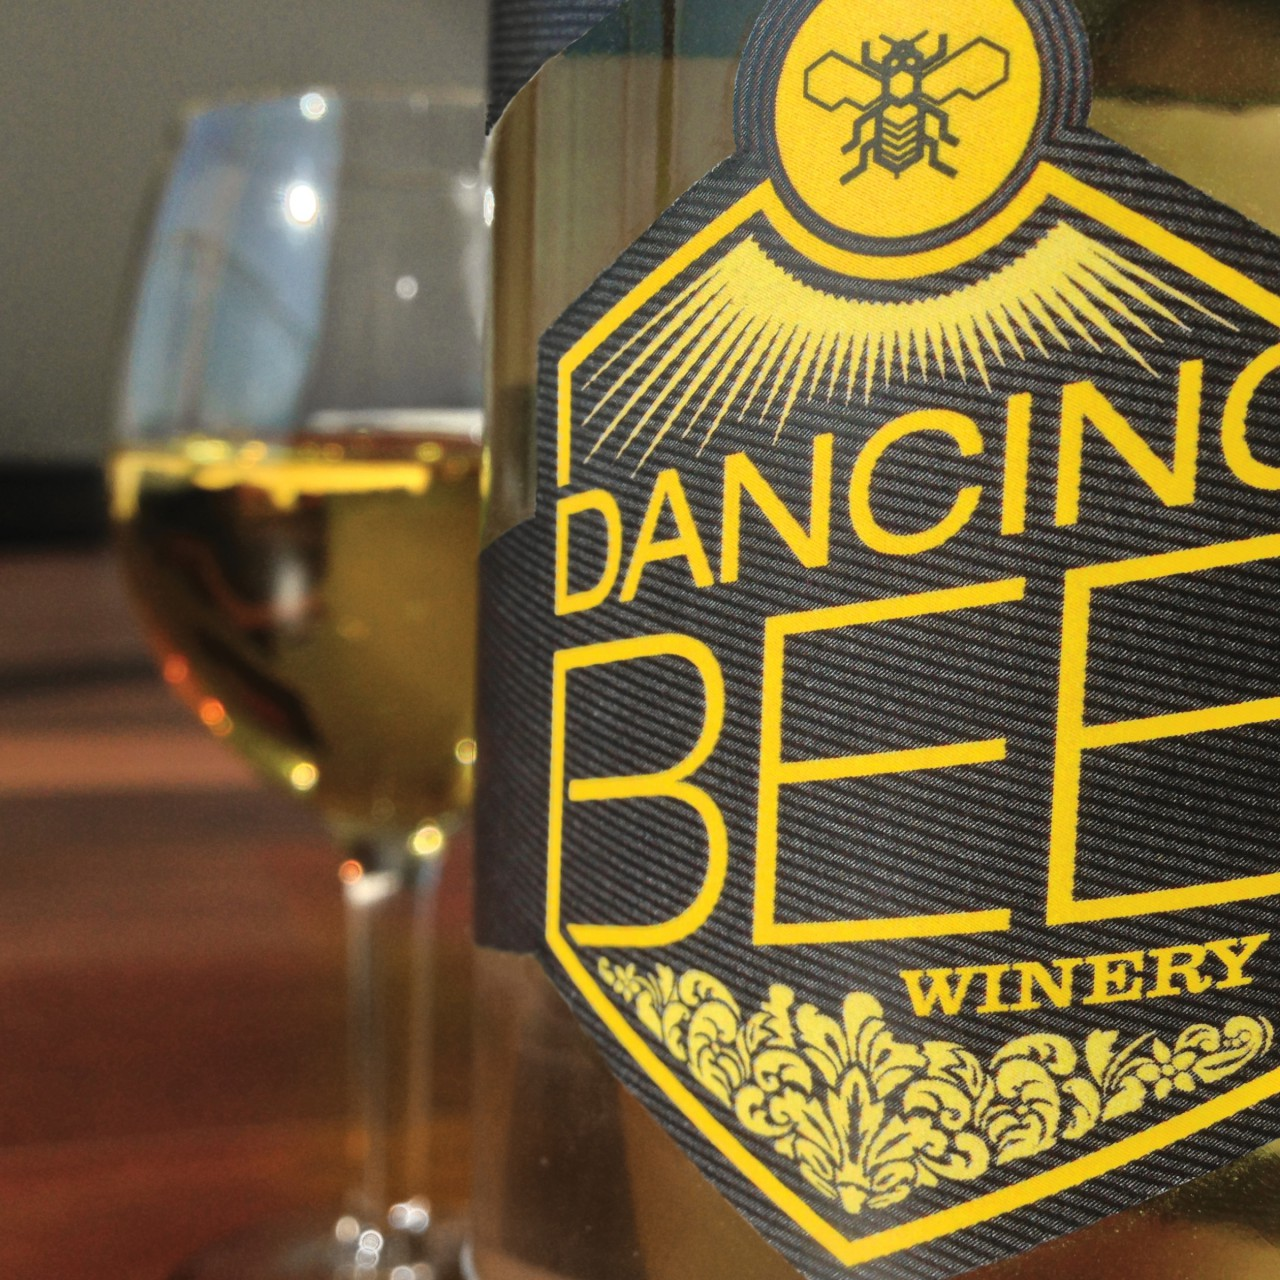 Image of Dancing Bee Winery logo on bottle label